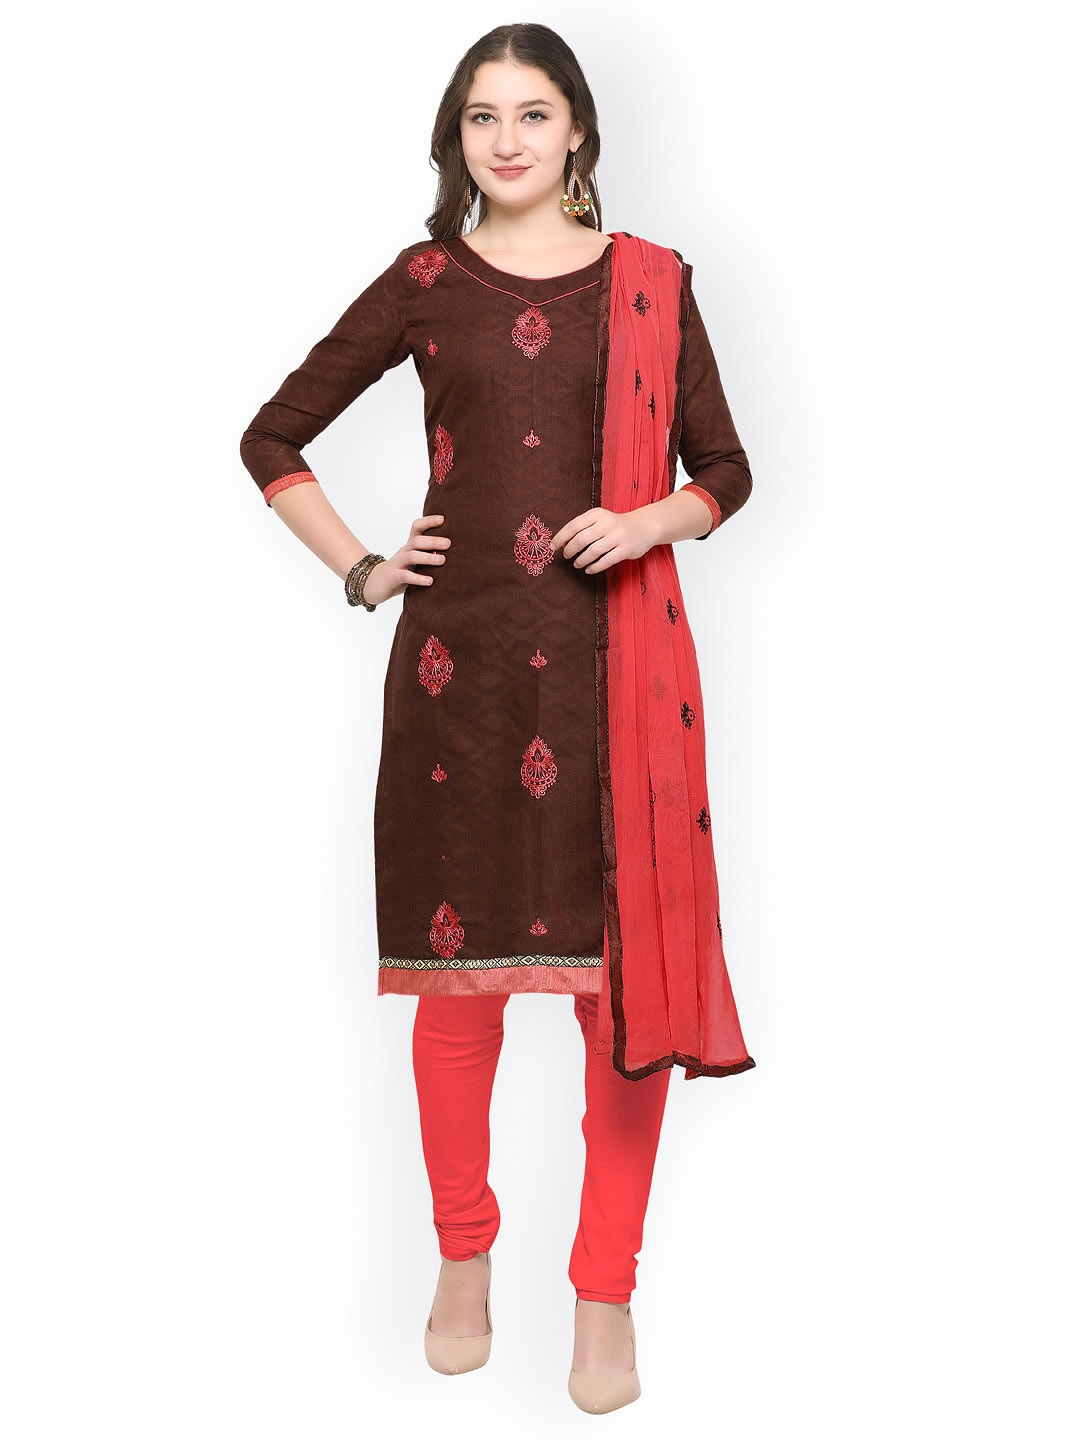 Rajnandini Brown & Red Cotton Blend Unstitched Dress Material image